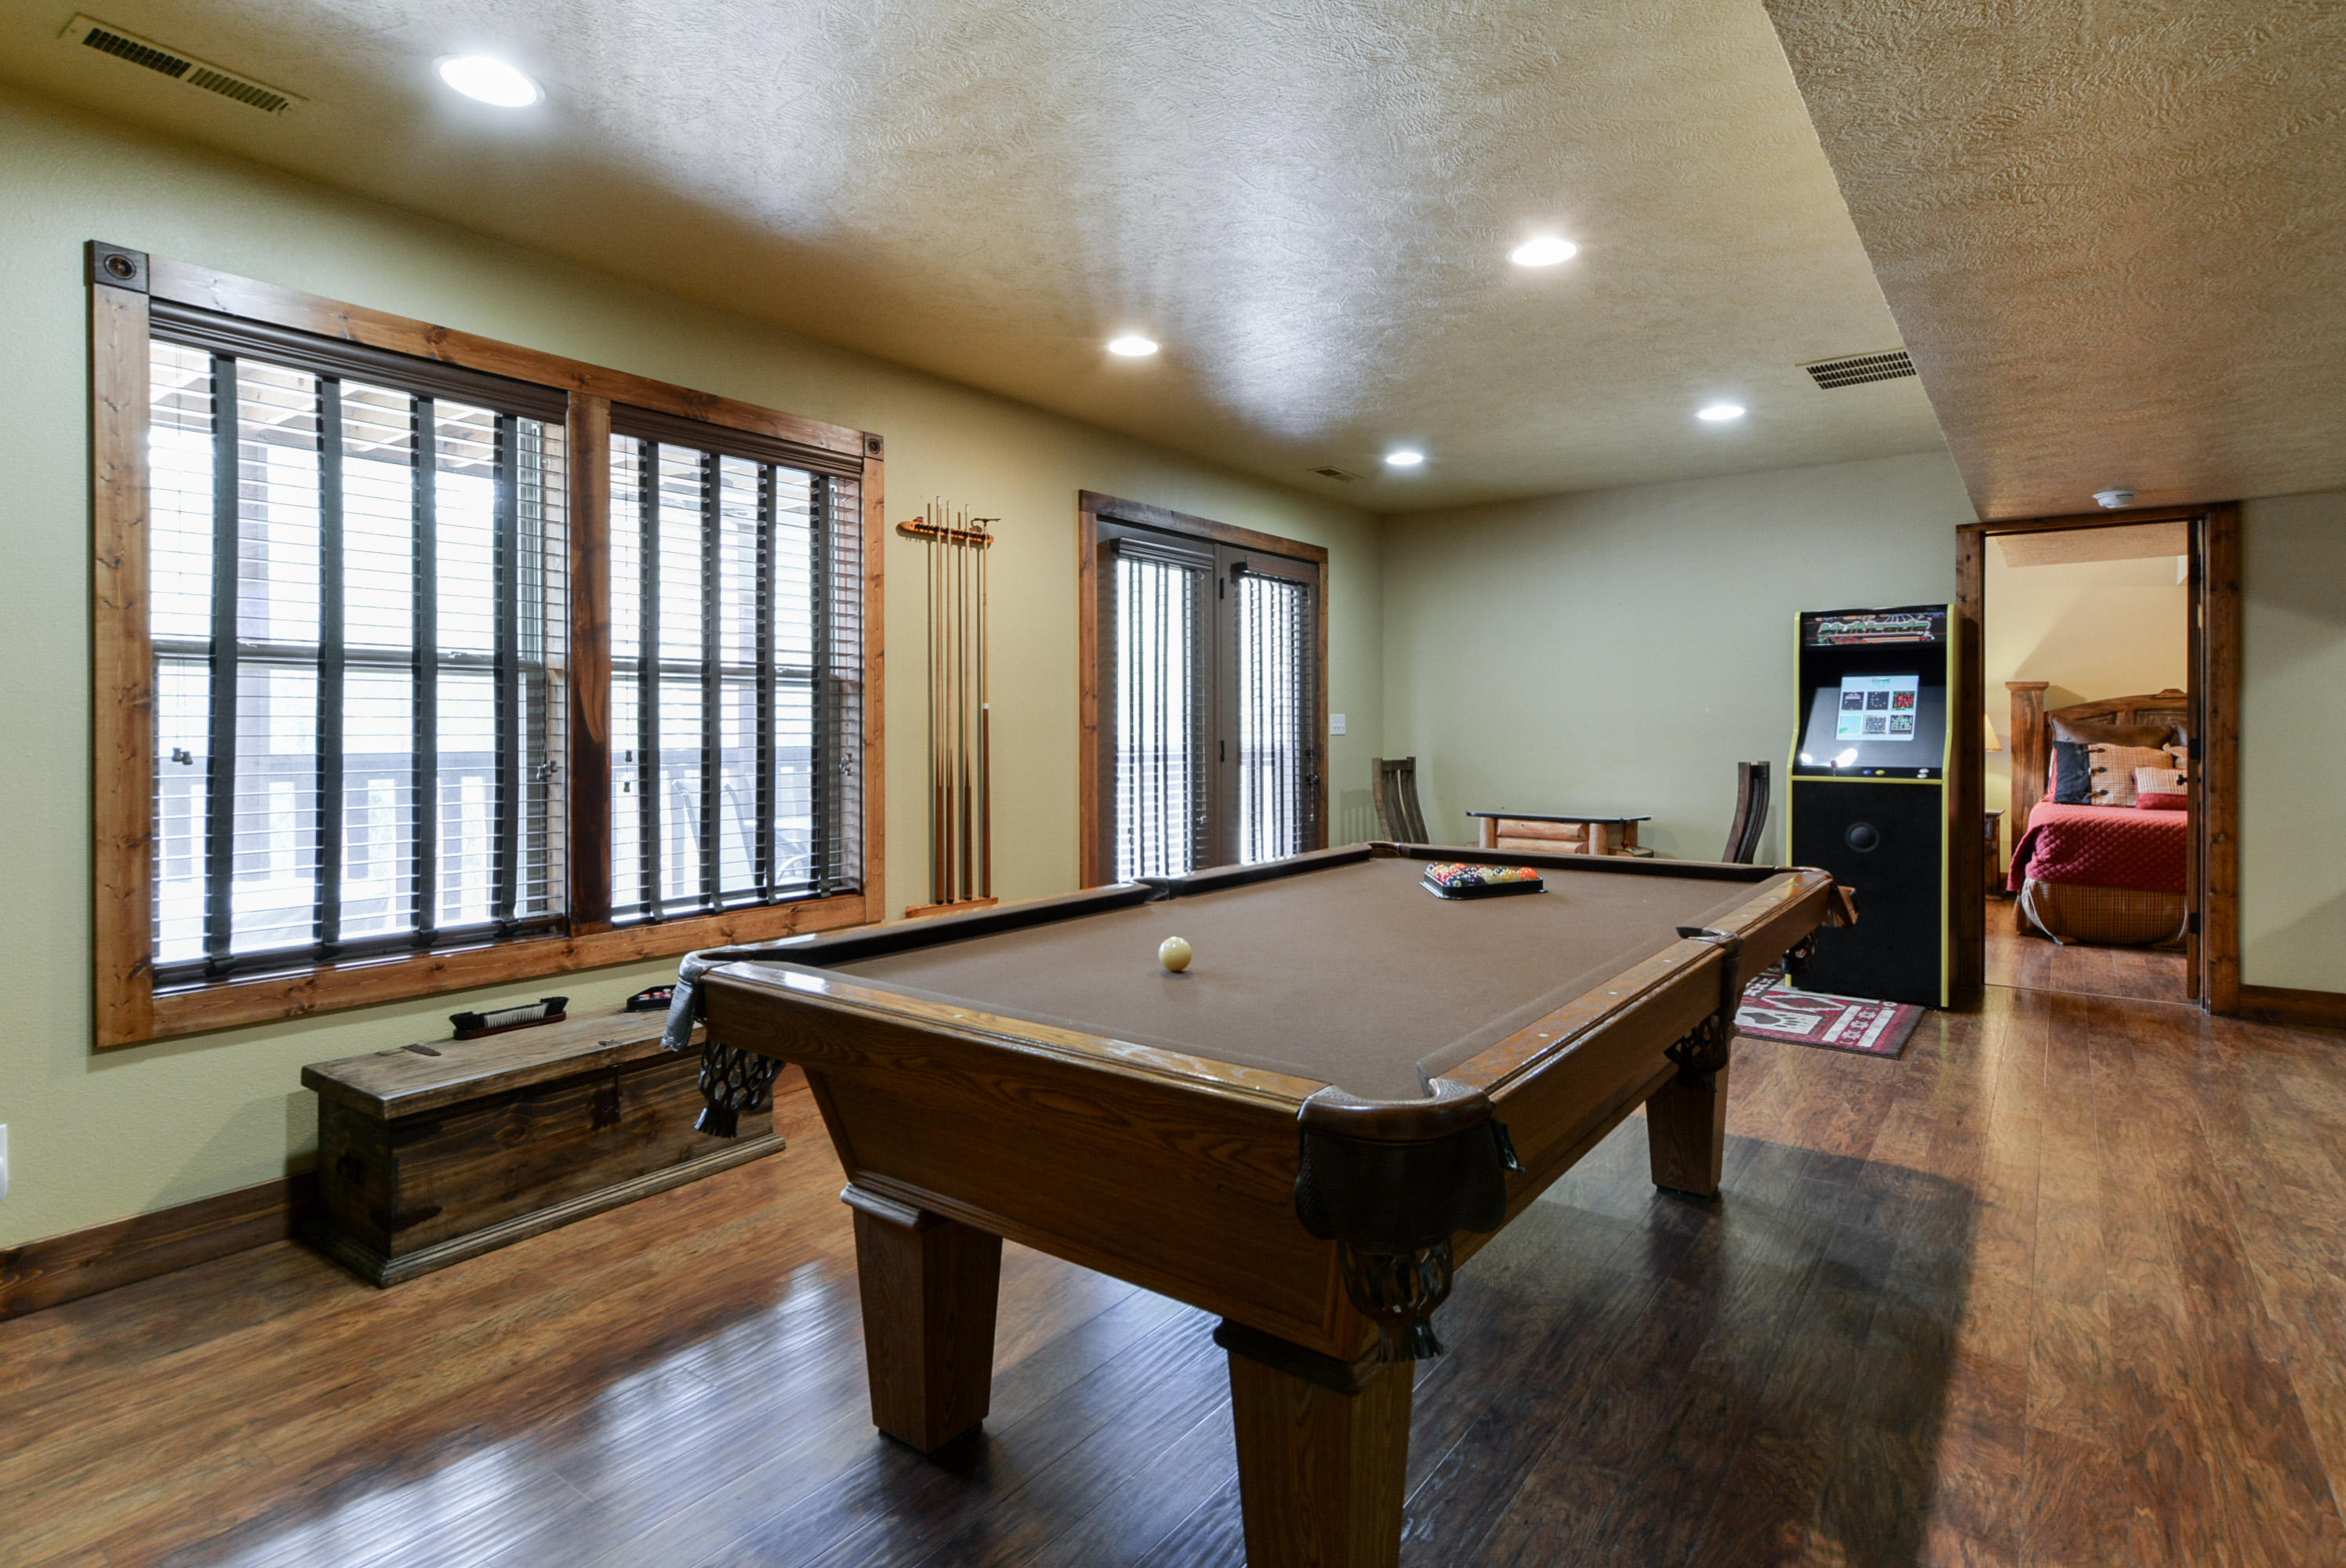 125/126 Poolside Way Branson West, MO 65737